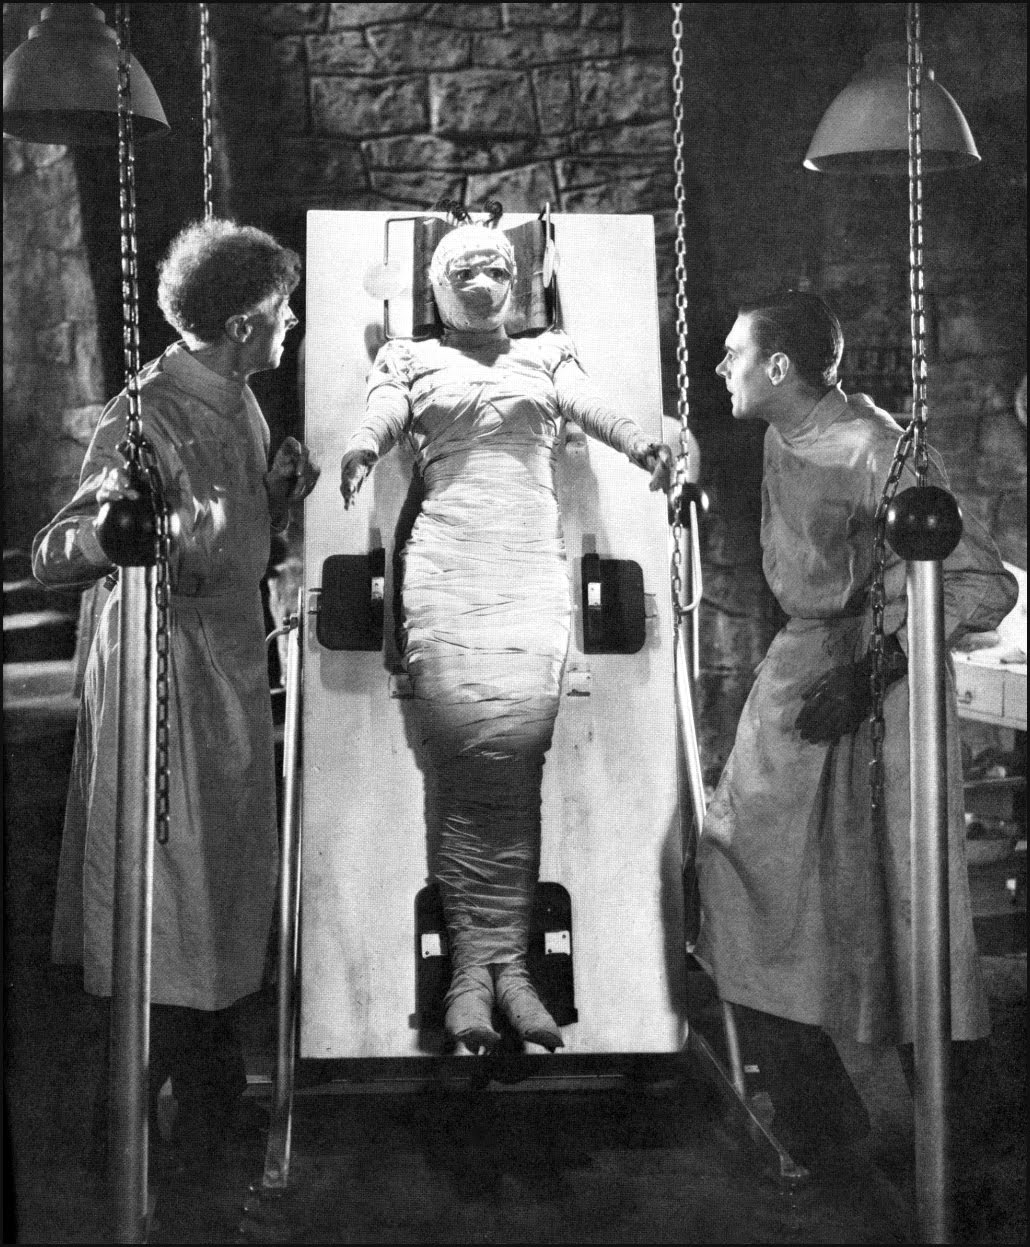 Bride of Frankenstein (1935), dir. James Whale